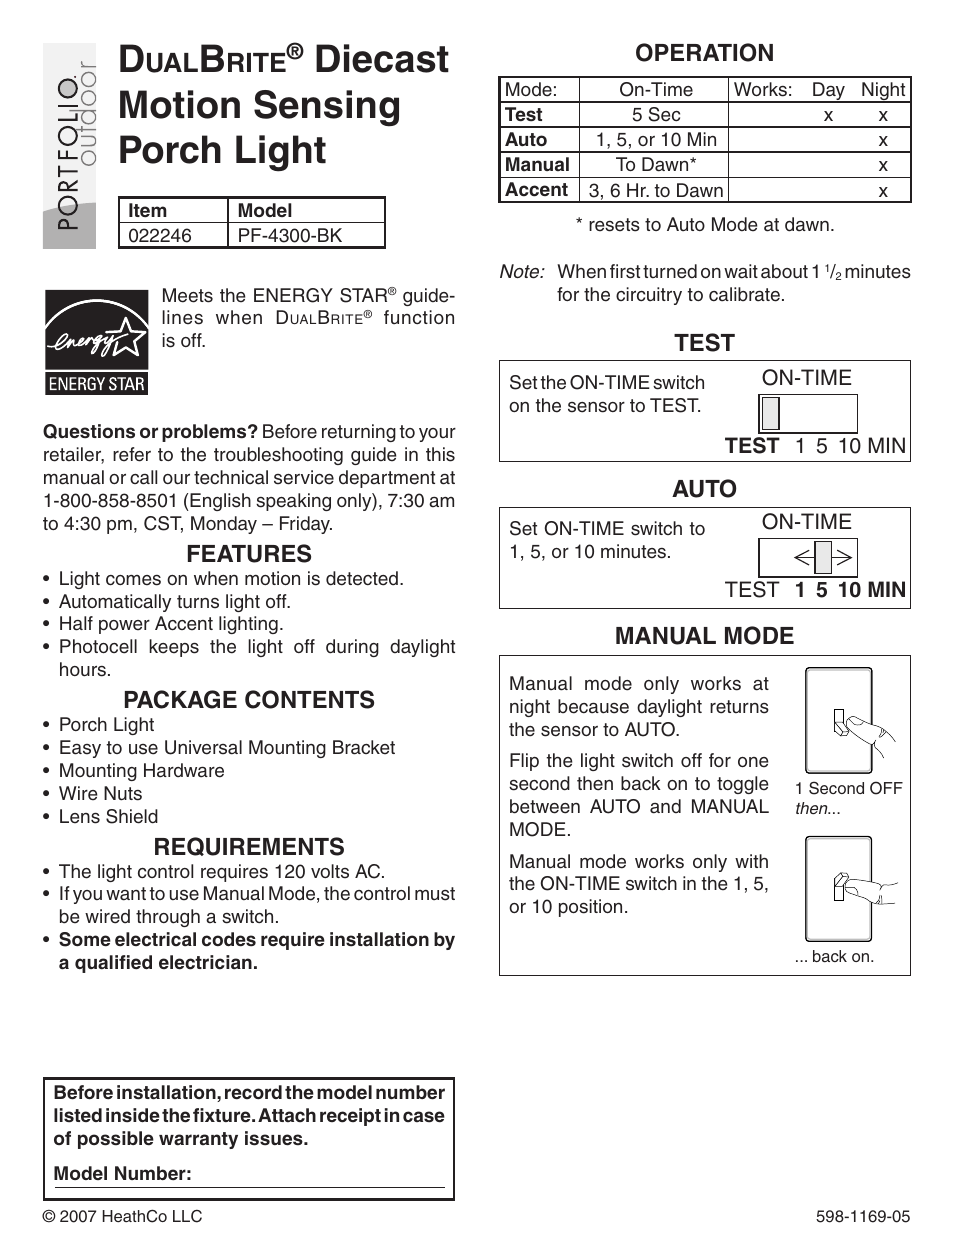 I Tried Installing A Photocell For Porch Light Using One Manual Guide